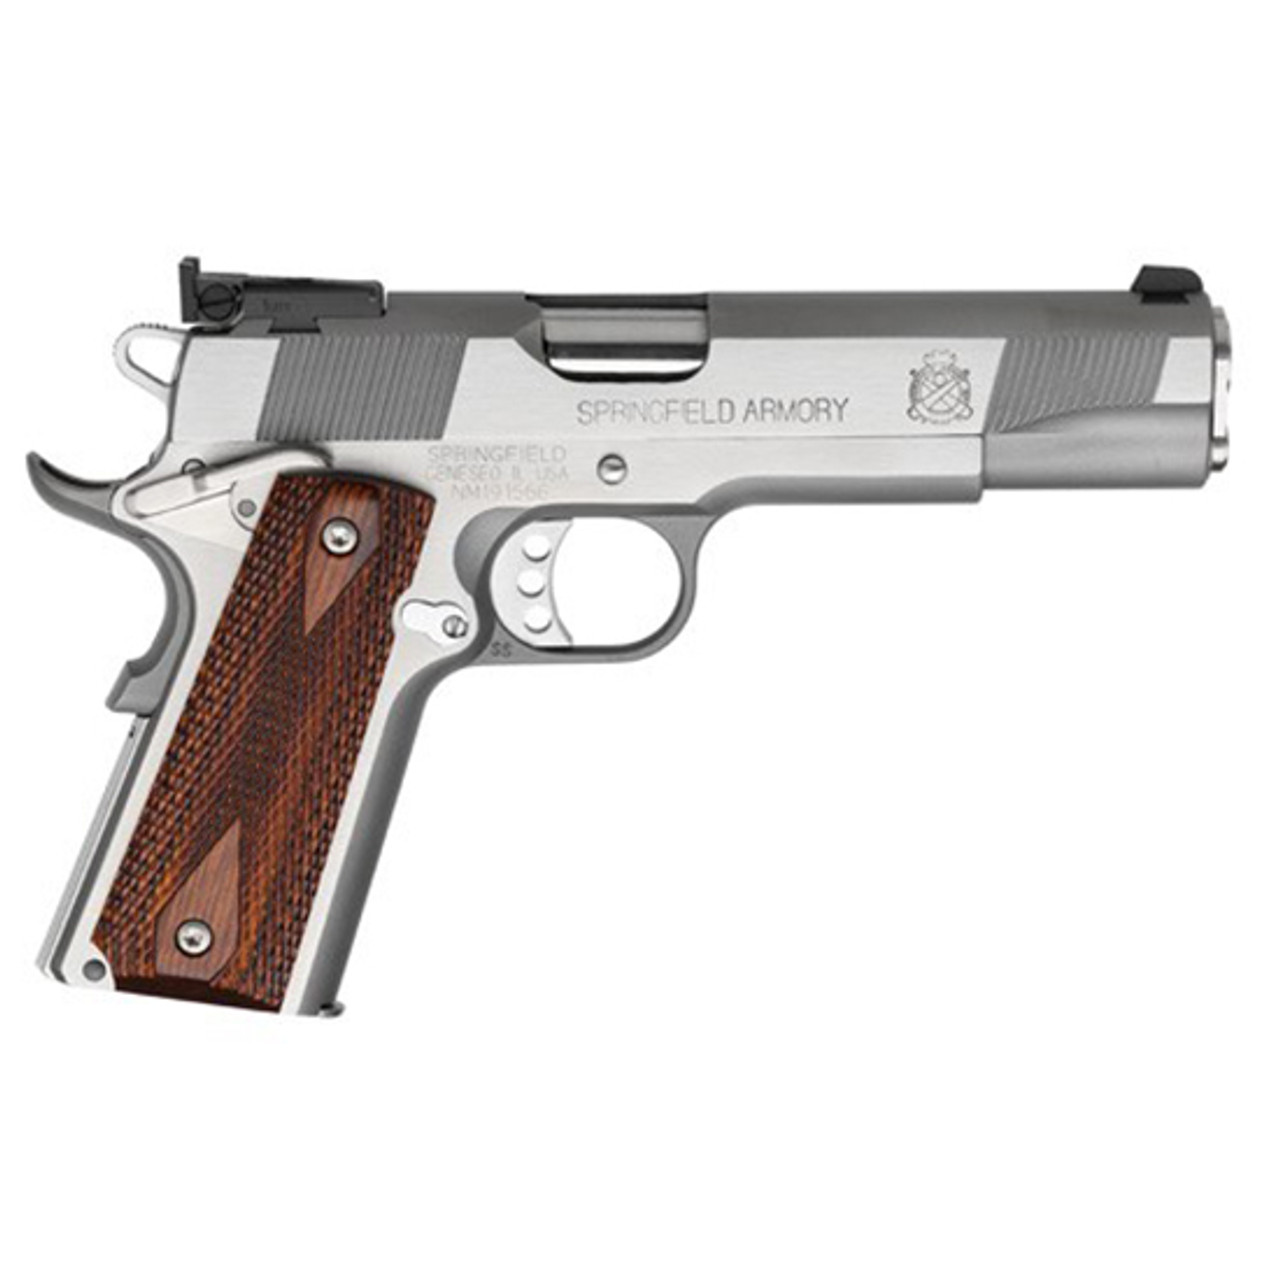 SPRINGFIELD ARMORY 1911-A1 9MM 5 SS AS TARGET CA LEGAL